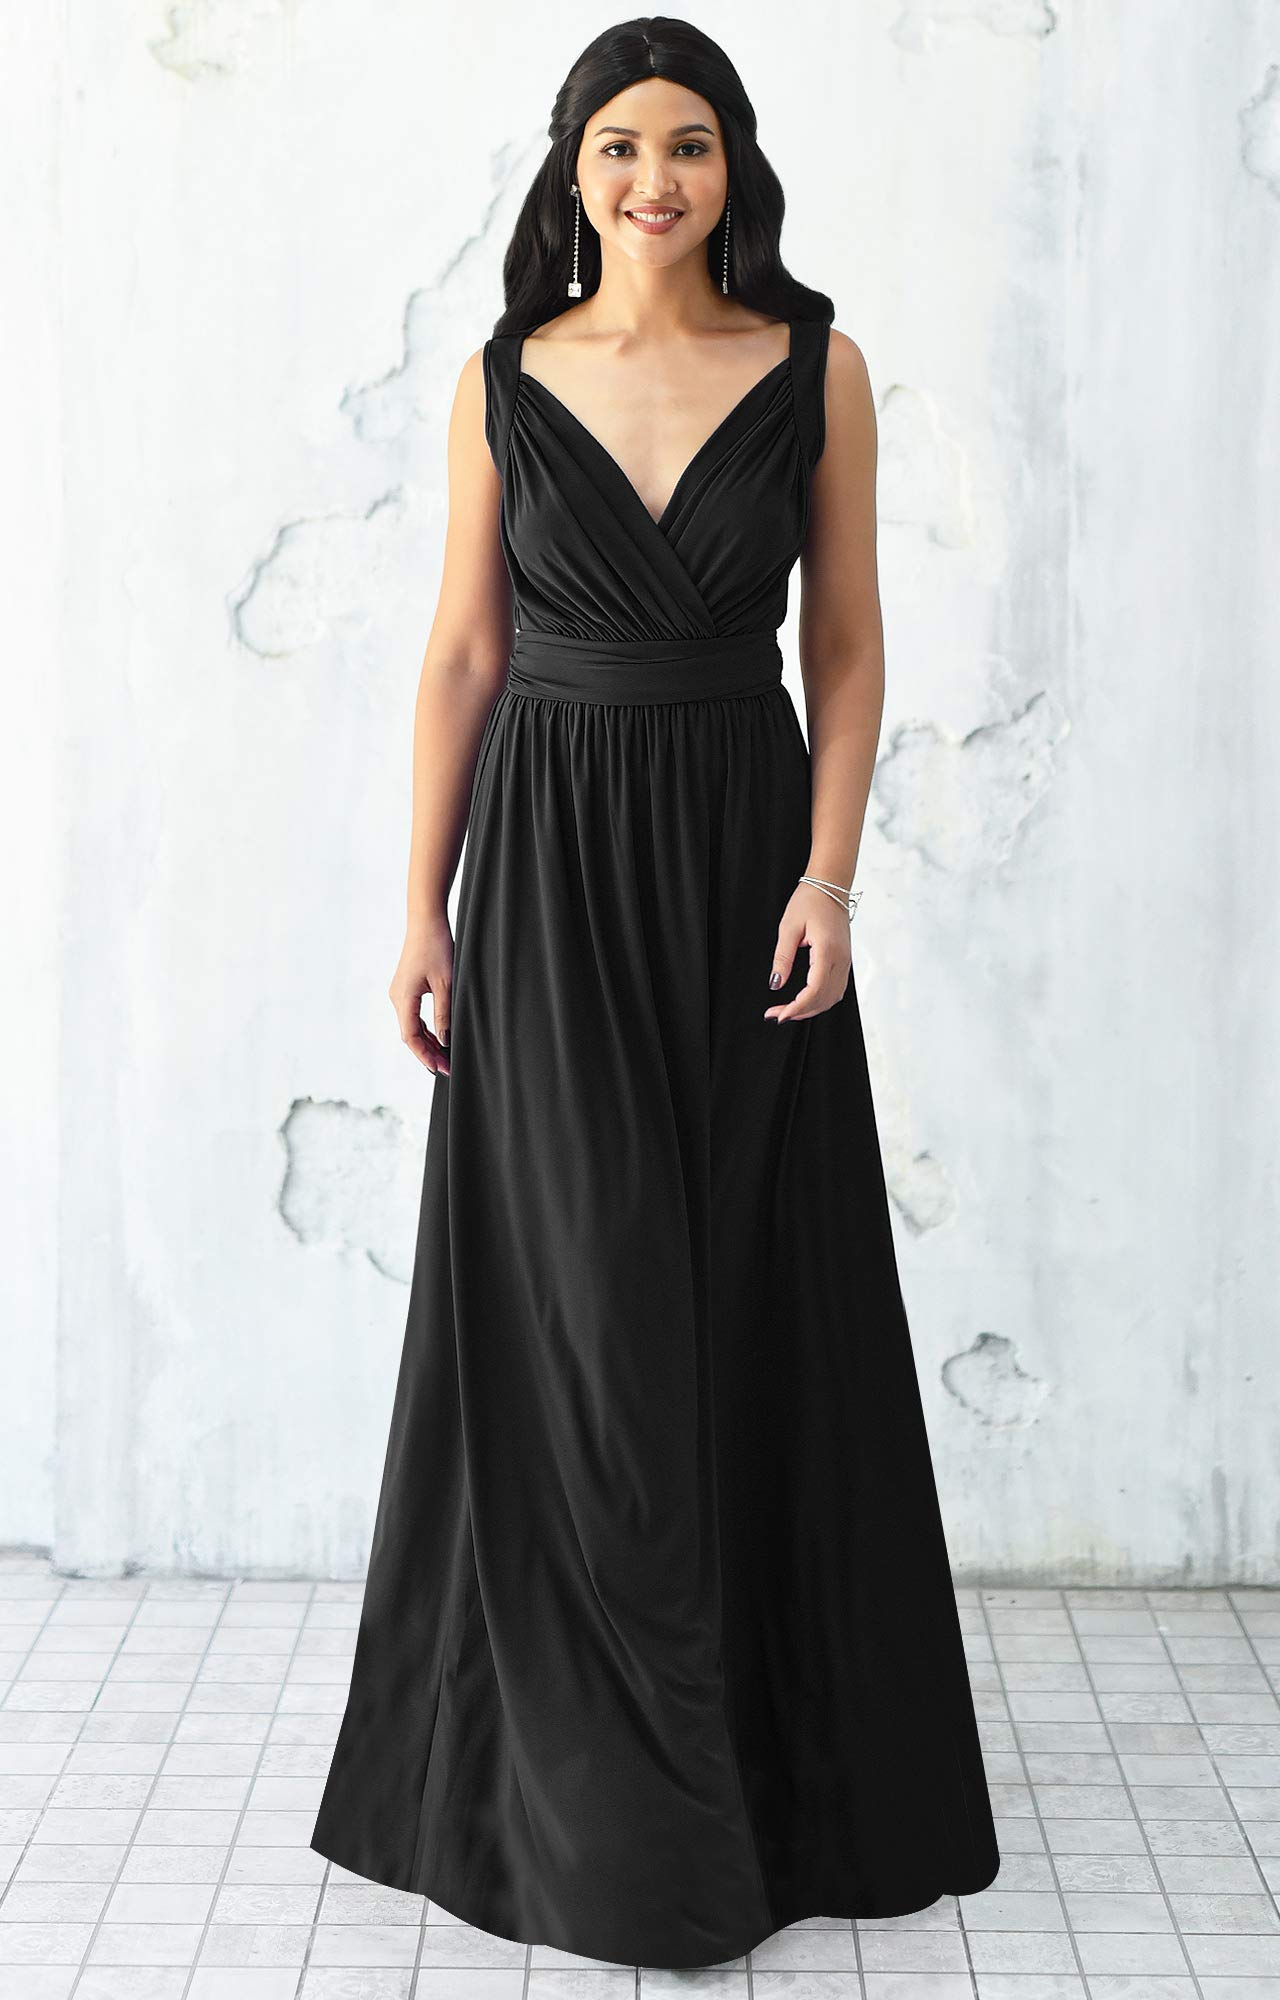 KOH KOH Womens Long Sleeveless Flowy Bridesmaids Cocktail Party Evening Formal Sexy Summer Wedding Guest Ball Prom Gown Gowns Maxi Dress Dresses, Black L 12-14 by KOH KOH (Image #3)